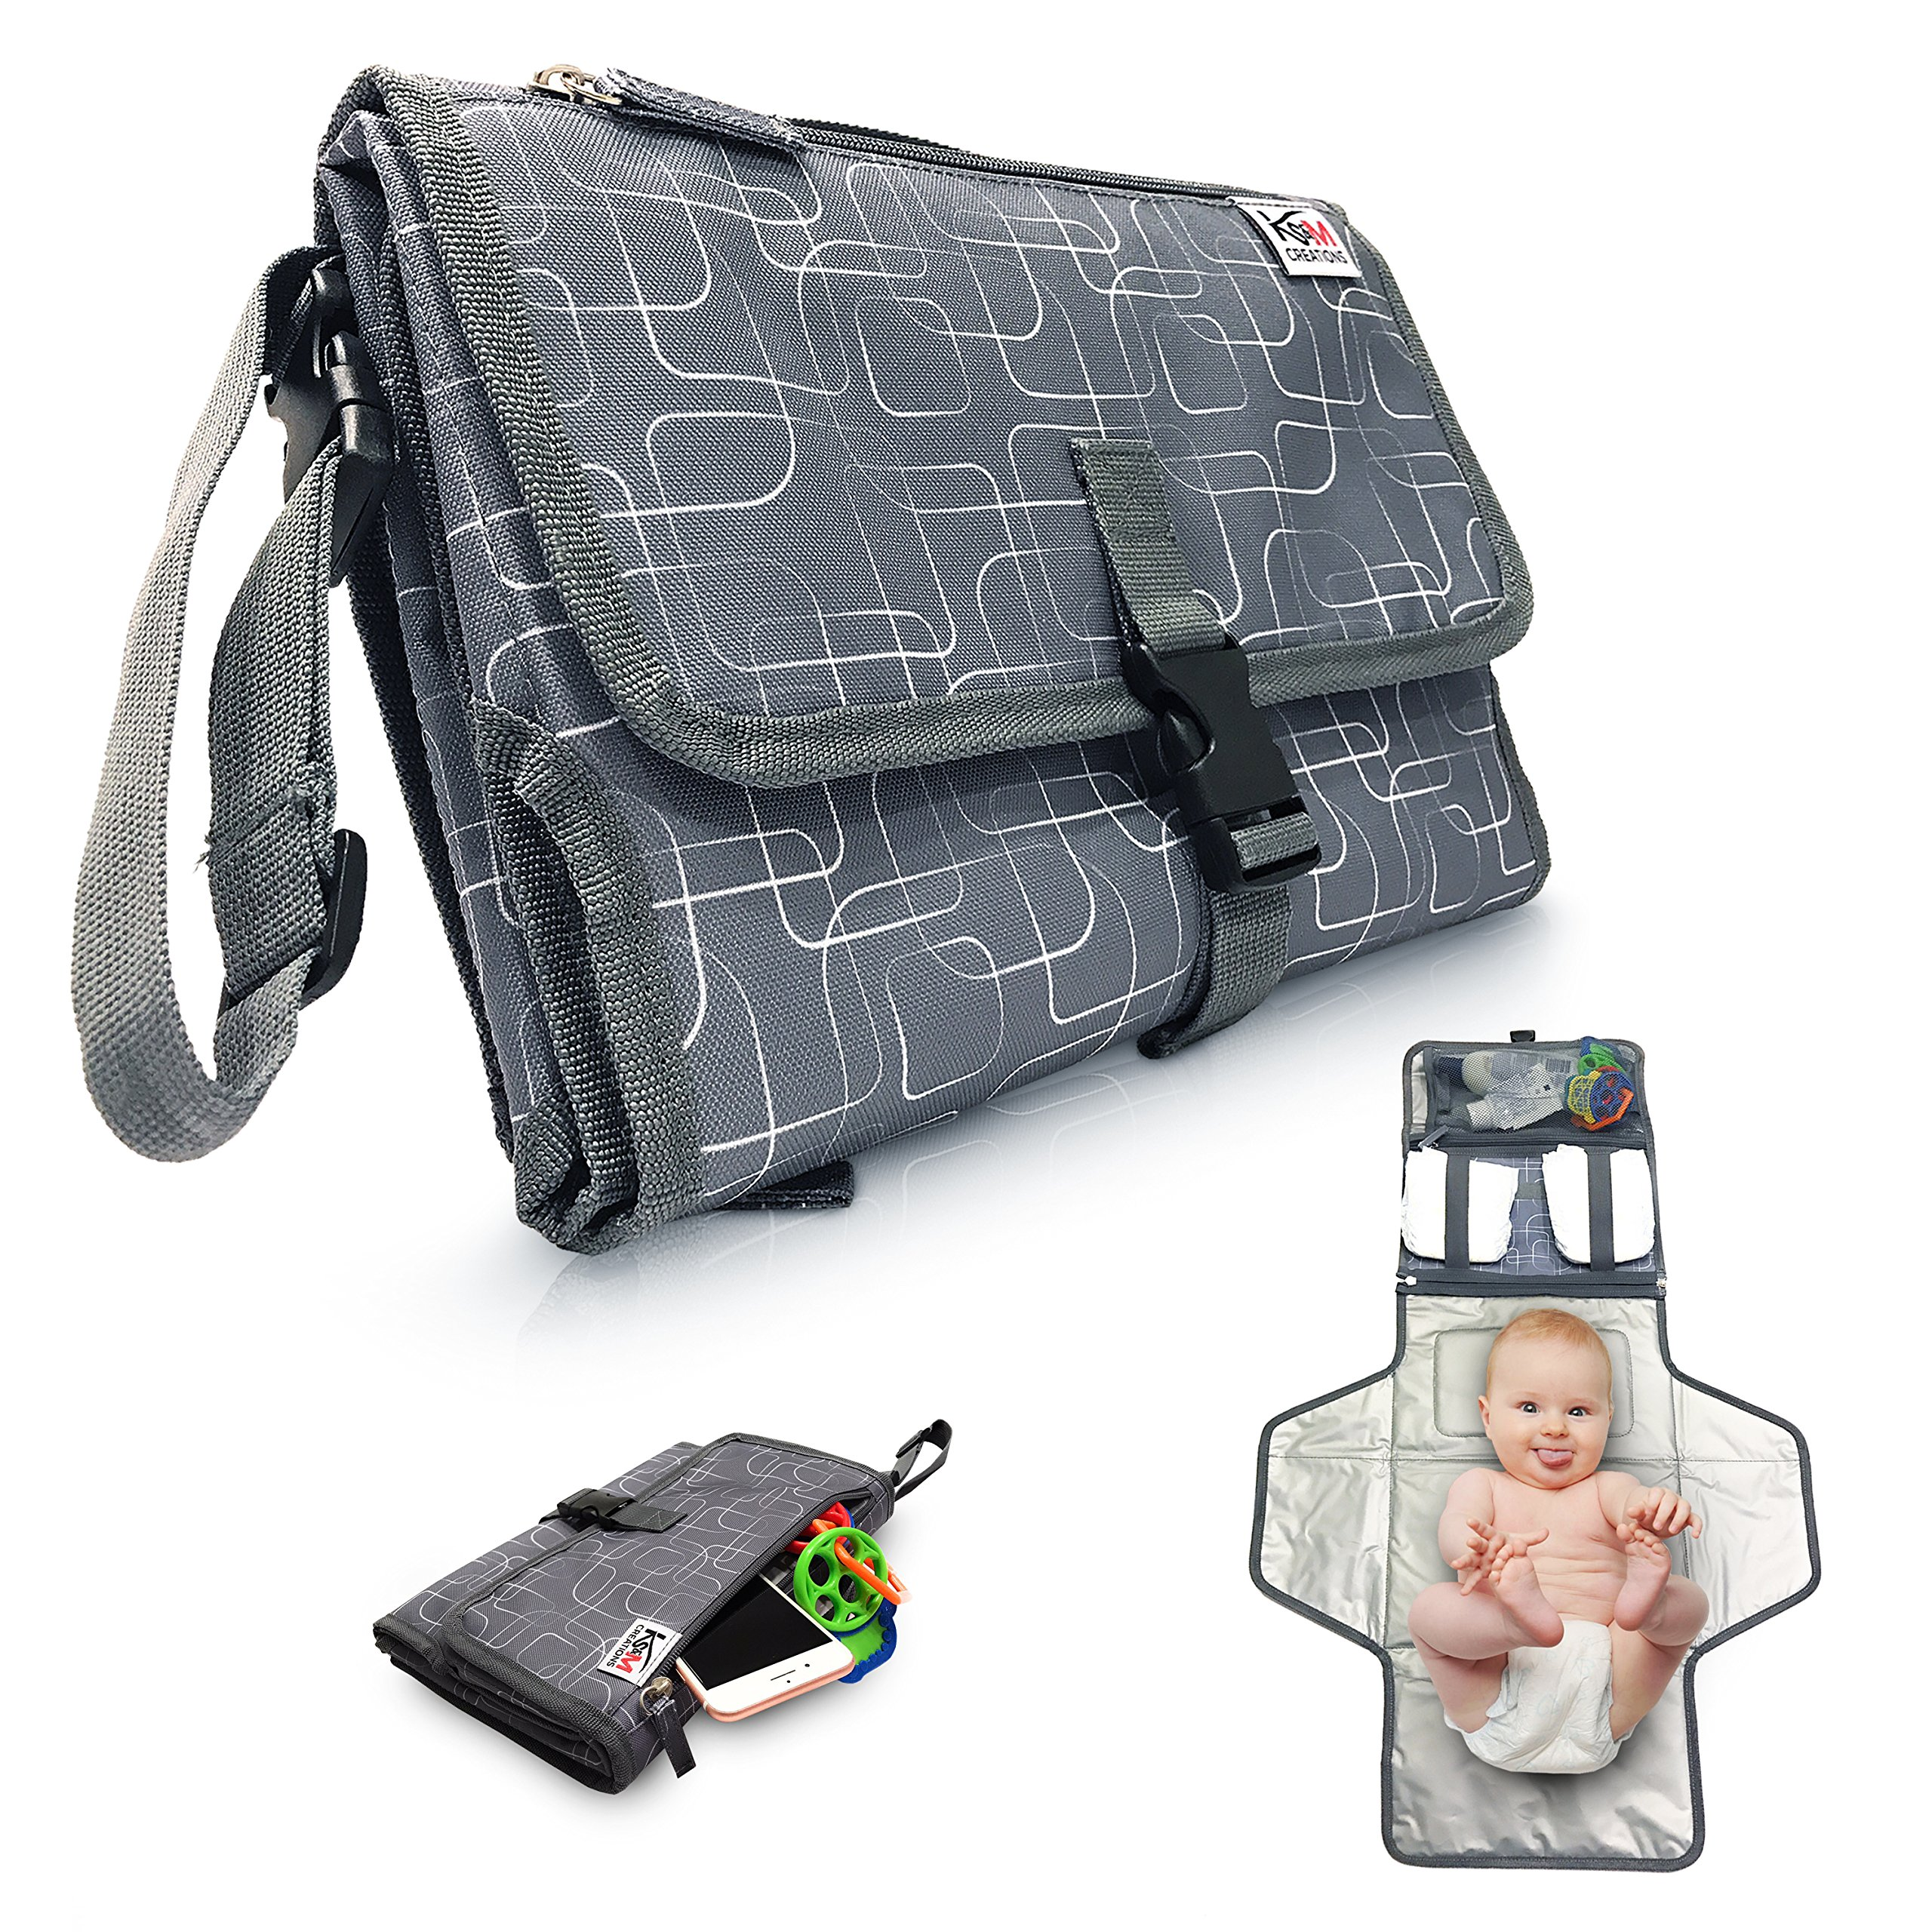 Portable Diaper Changing Pad for Baby to Toddler - Waterproof Cushioned Mat and Built in Head Pillow, 3 Pockets - Wipeable - Lightweight On the Go Diapering Solution - Stylish Unique Design - Grey